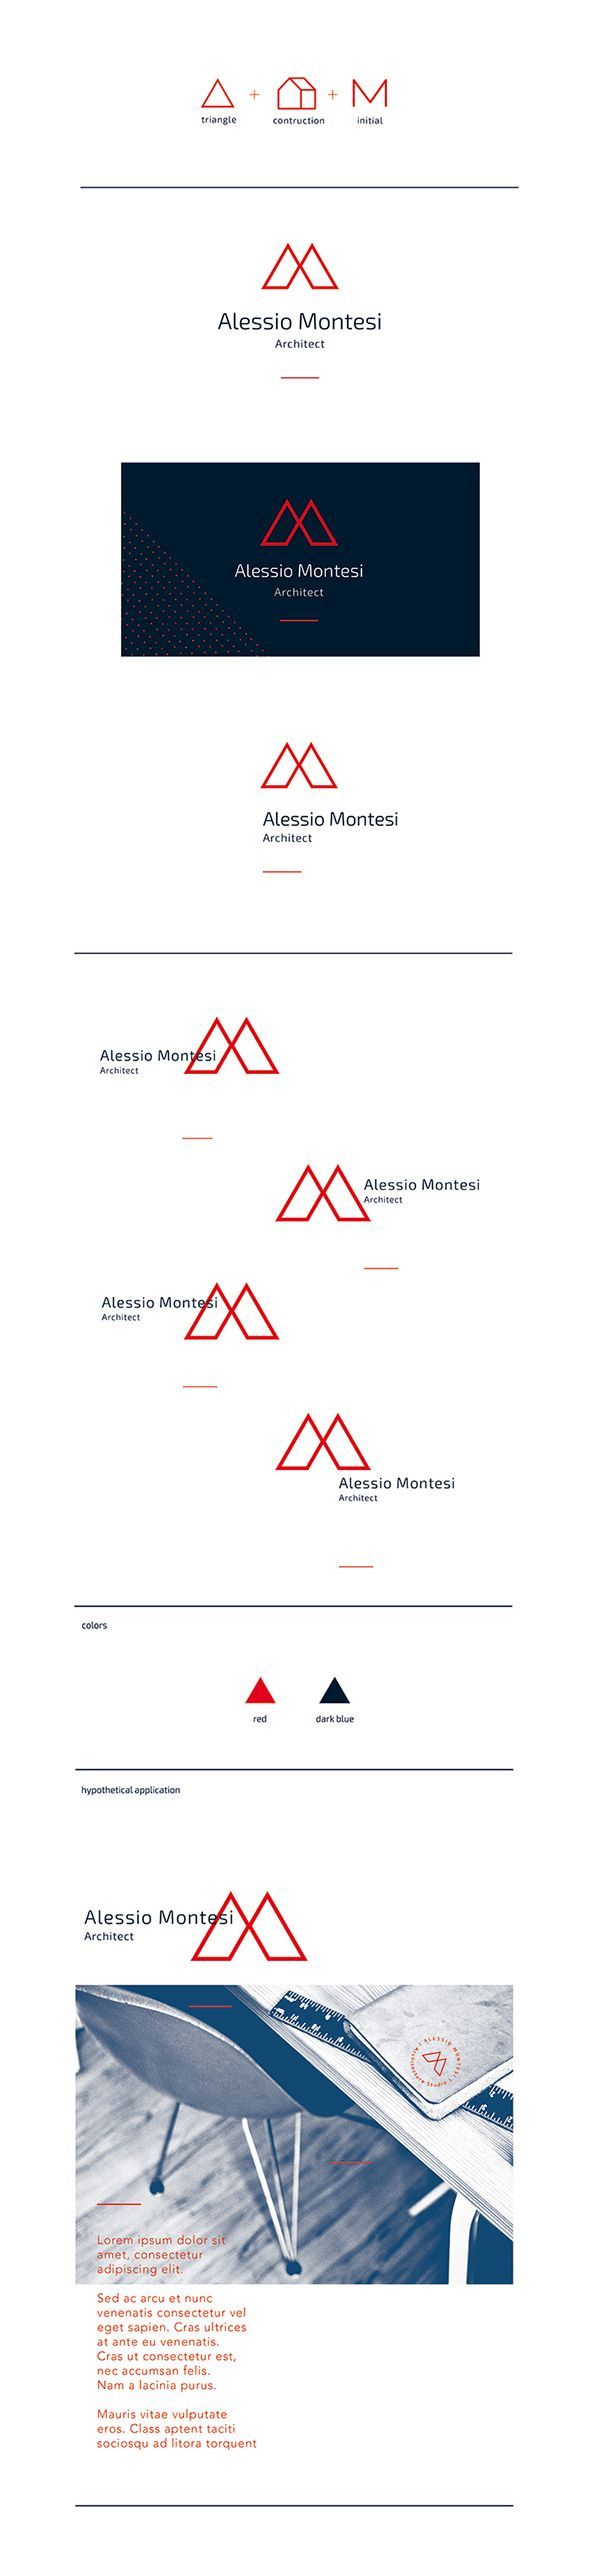 Studio logo and hypothetical graphics applications.I started working on the triangle, which is a stable and dynamic structure, the concept of structure which represents the architect job and the letter M, one of the initials of the brand.